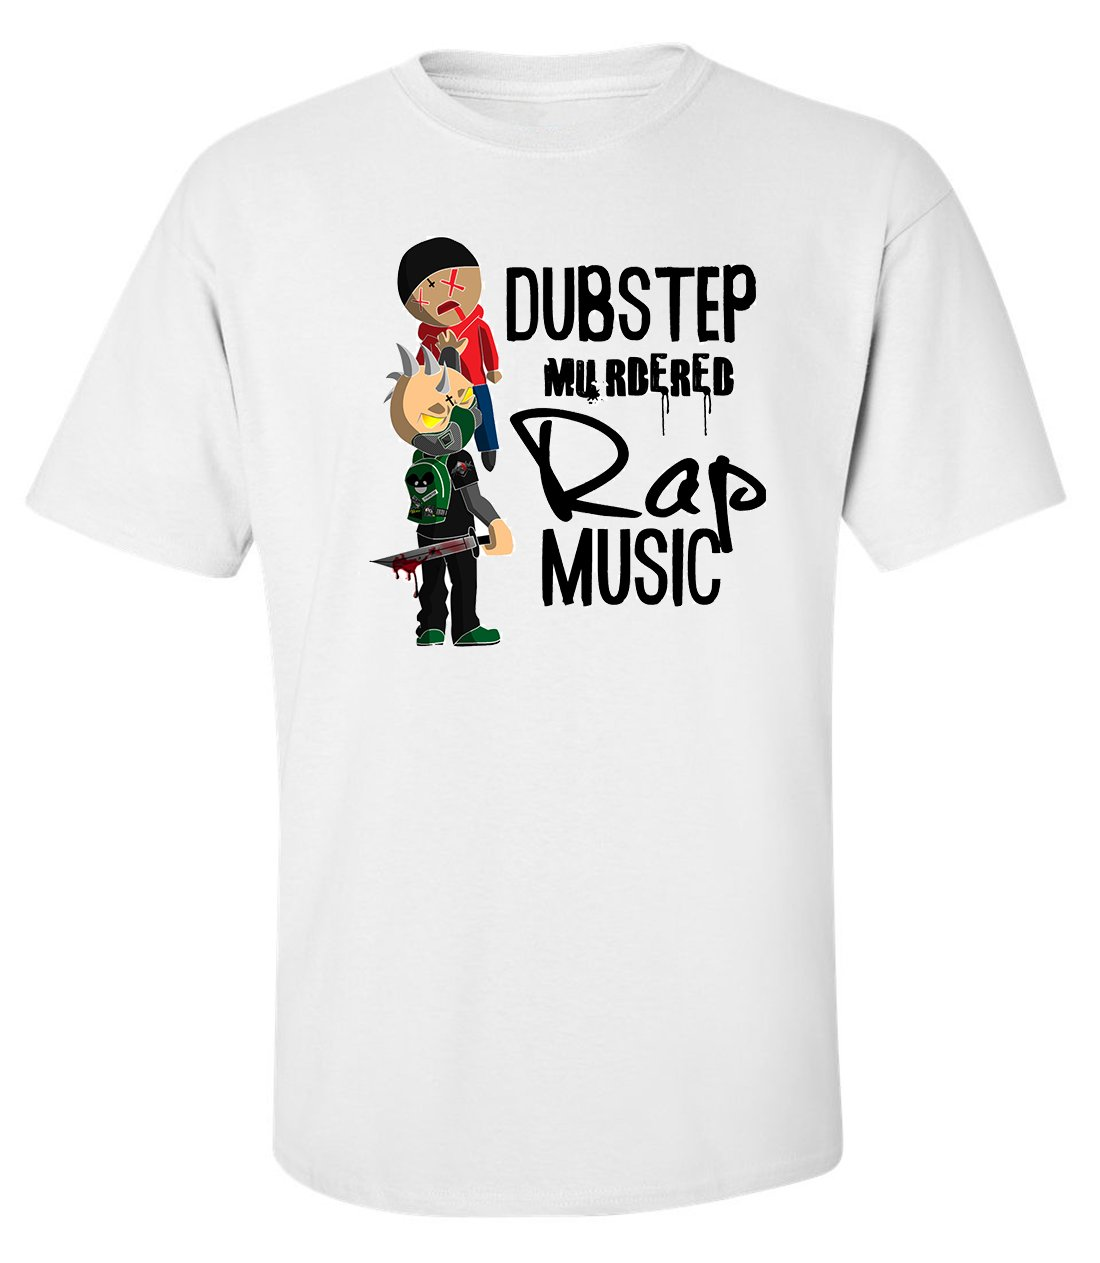 Dubstep murdered rap music men printed white cotton t-shirt size S